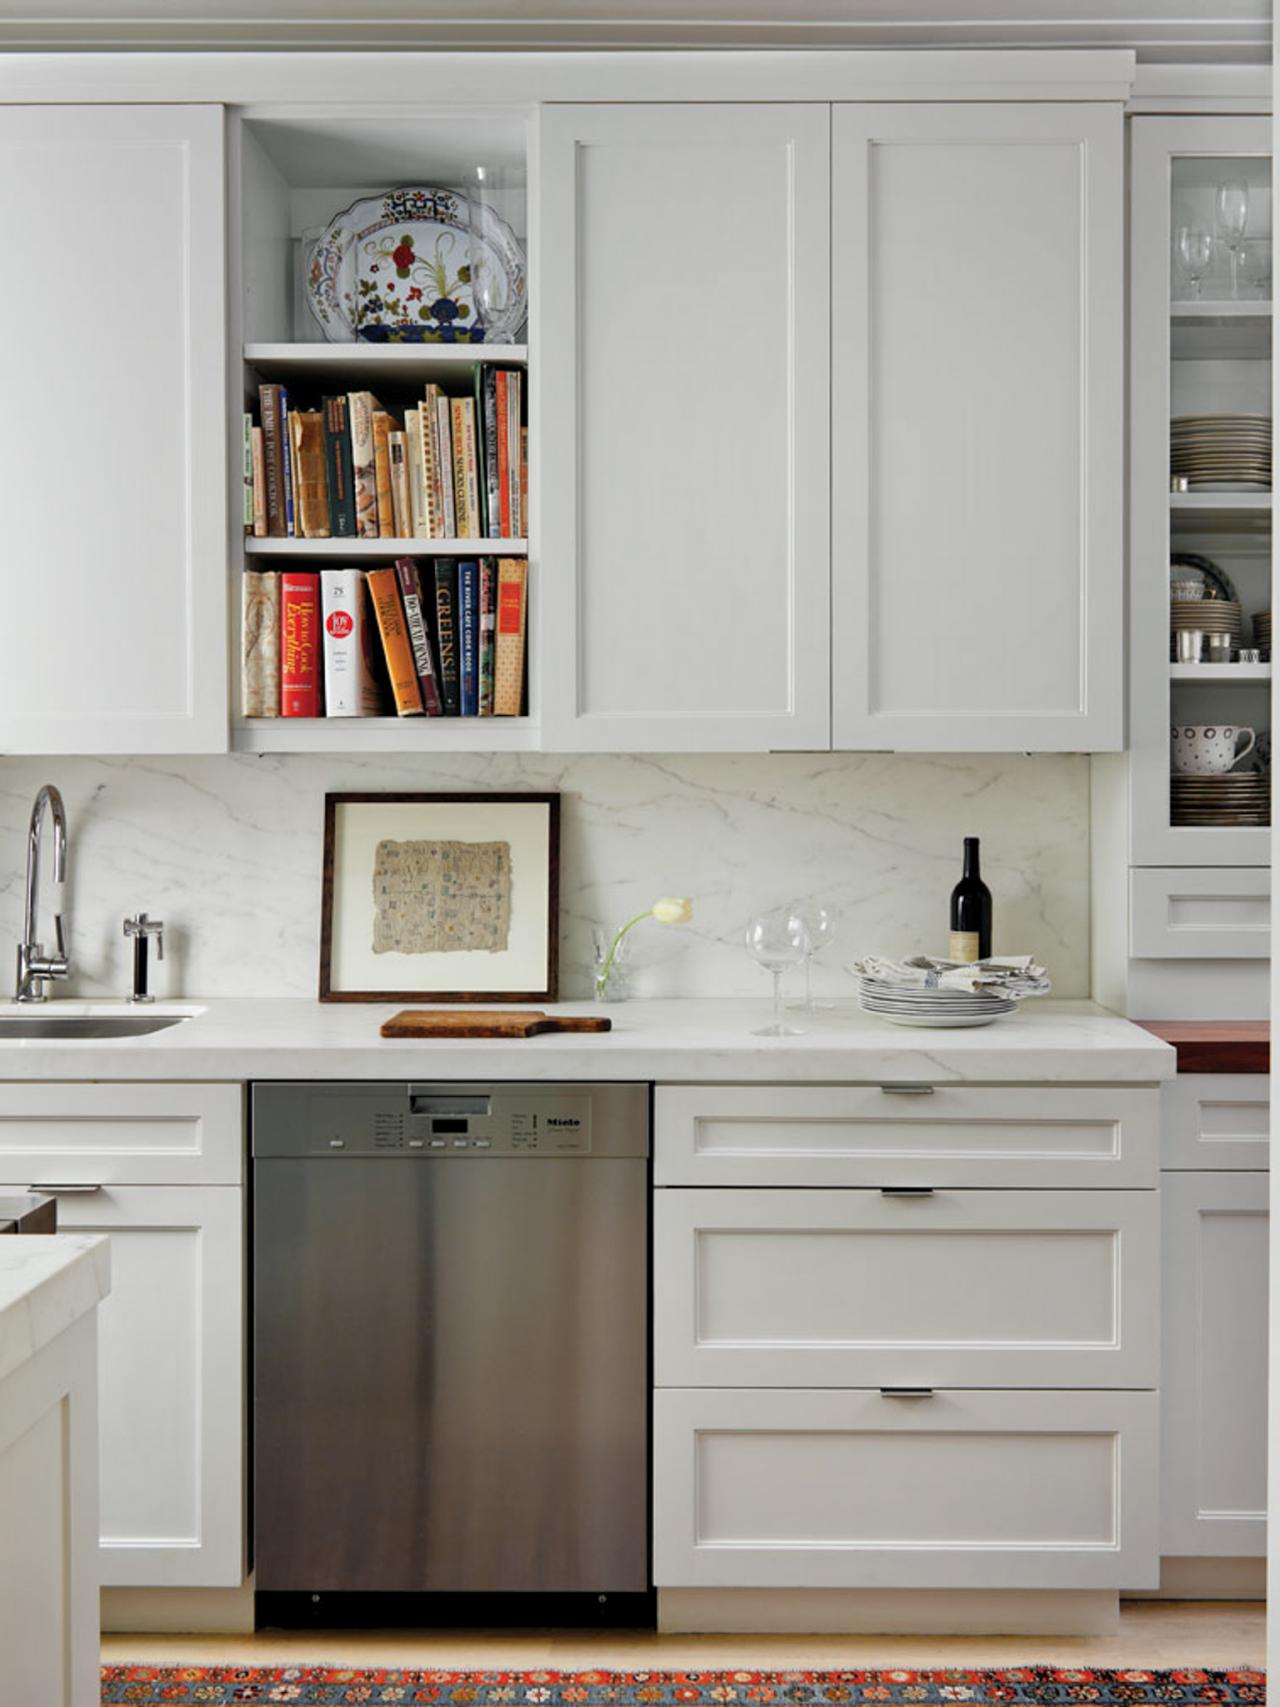 Open Kitchen Cabinets with Shelves